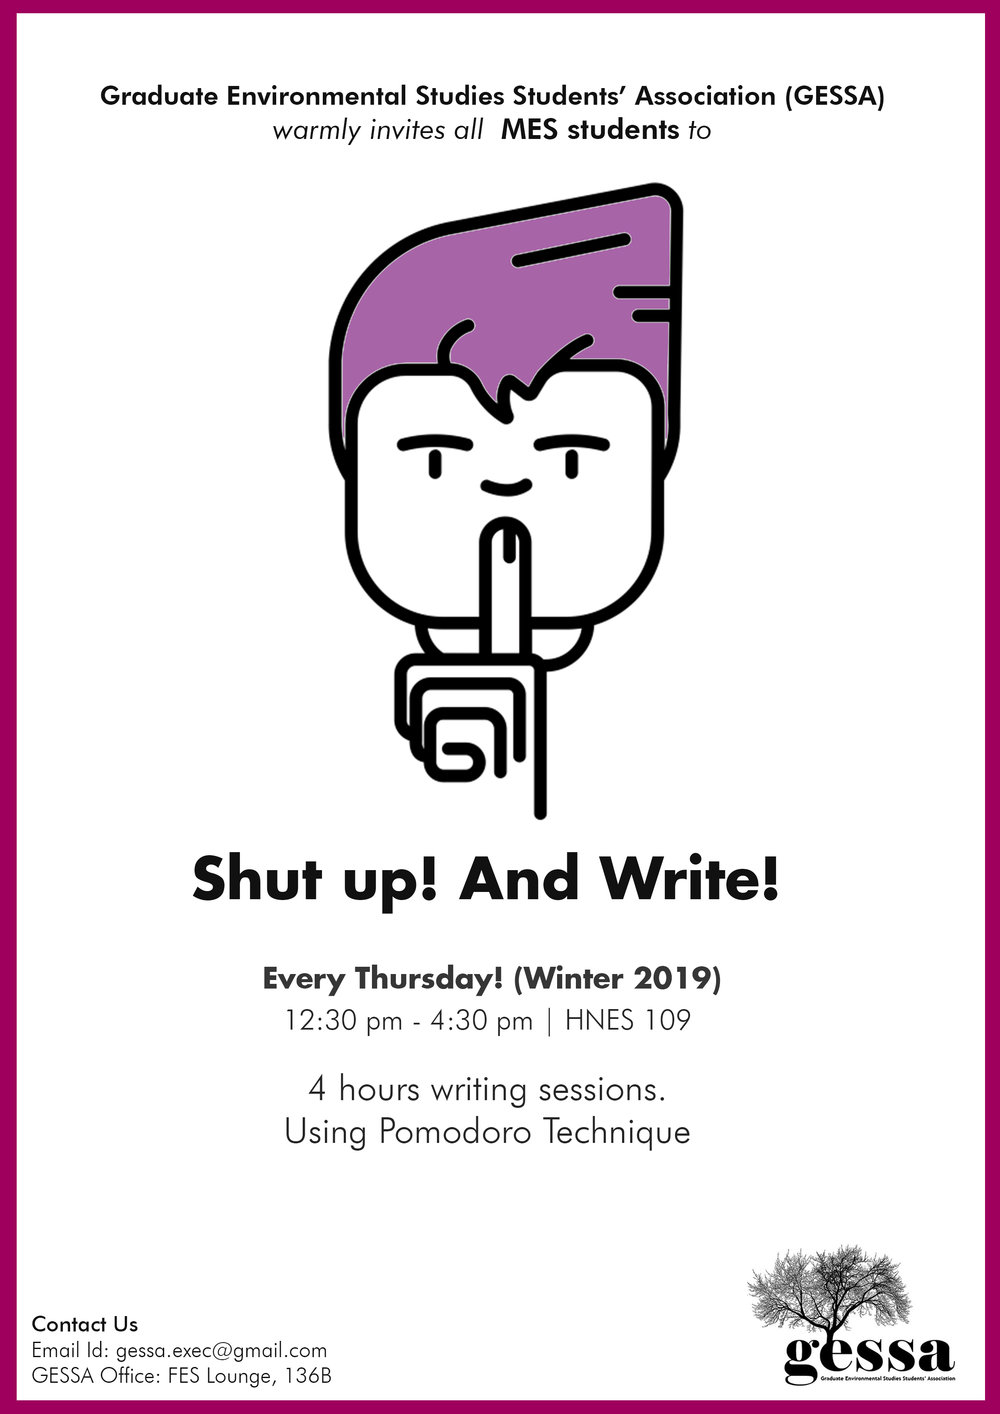 shut up and write.jpg